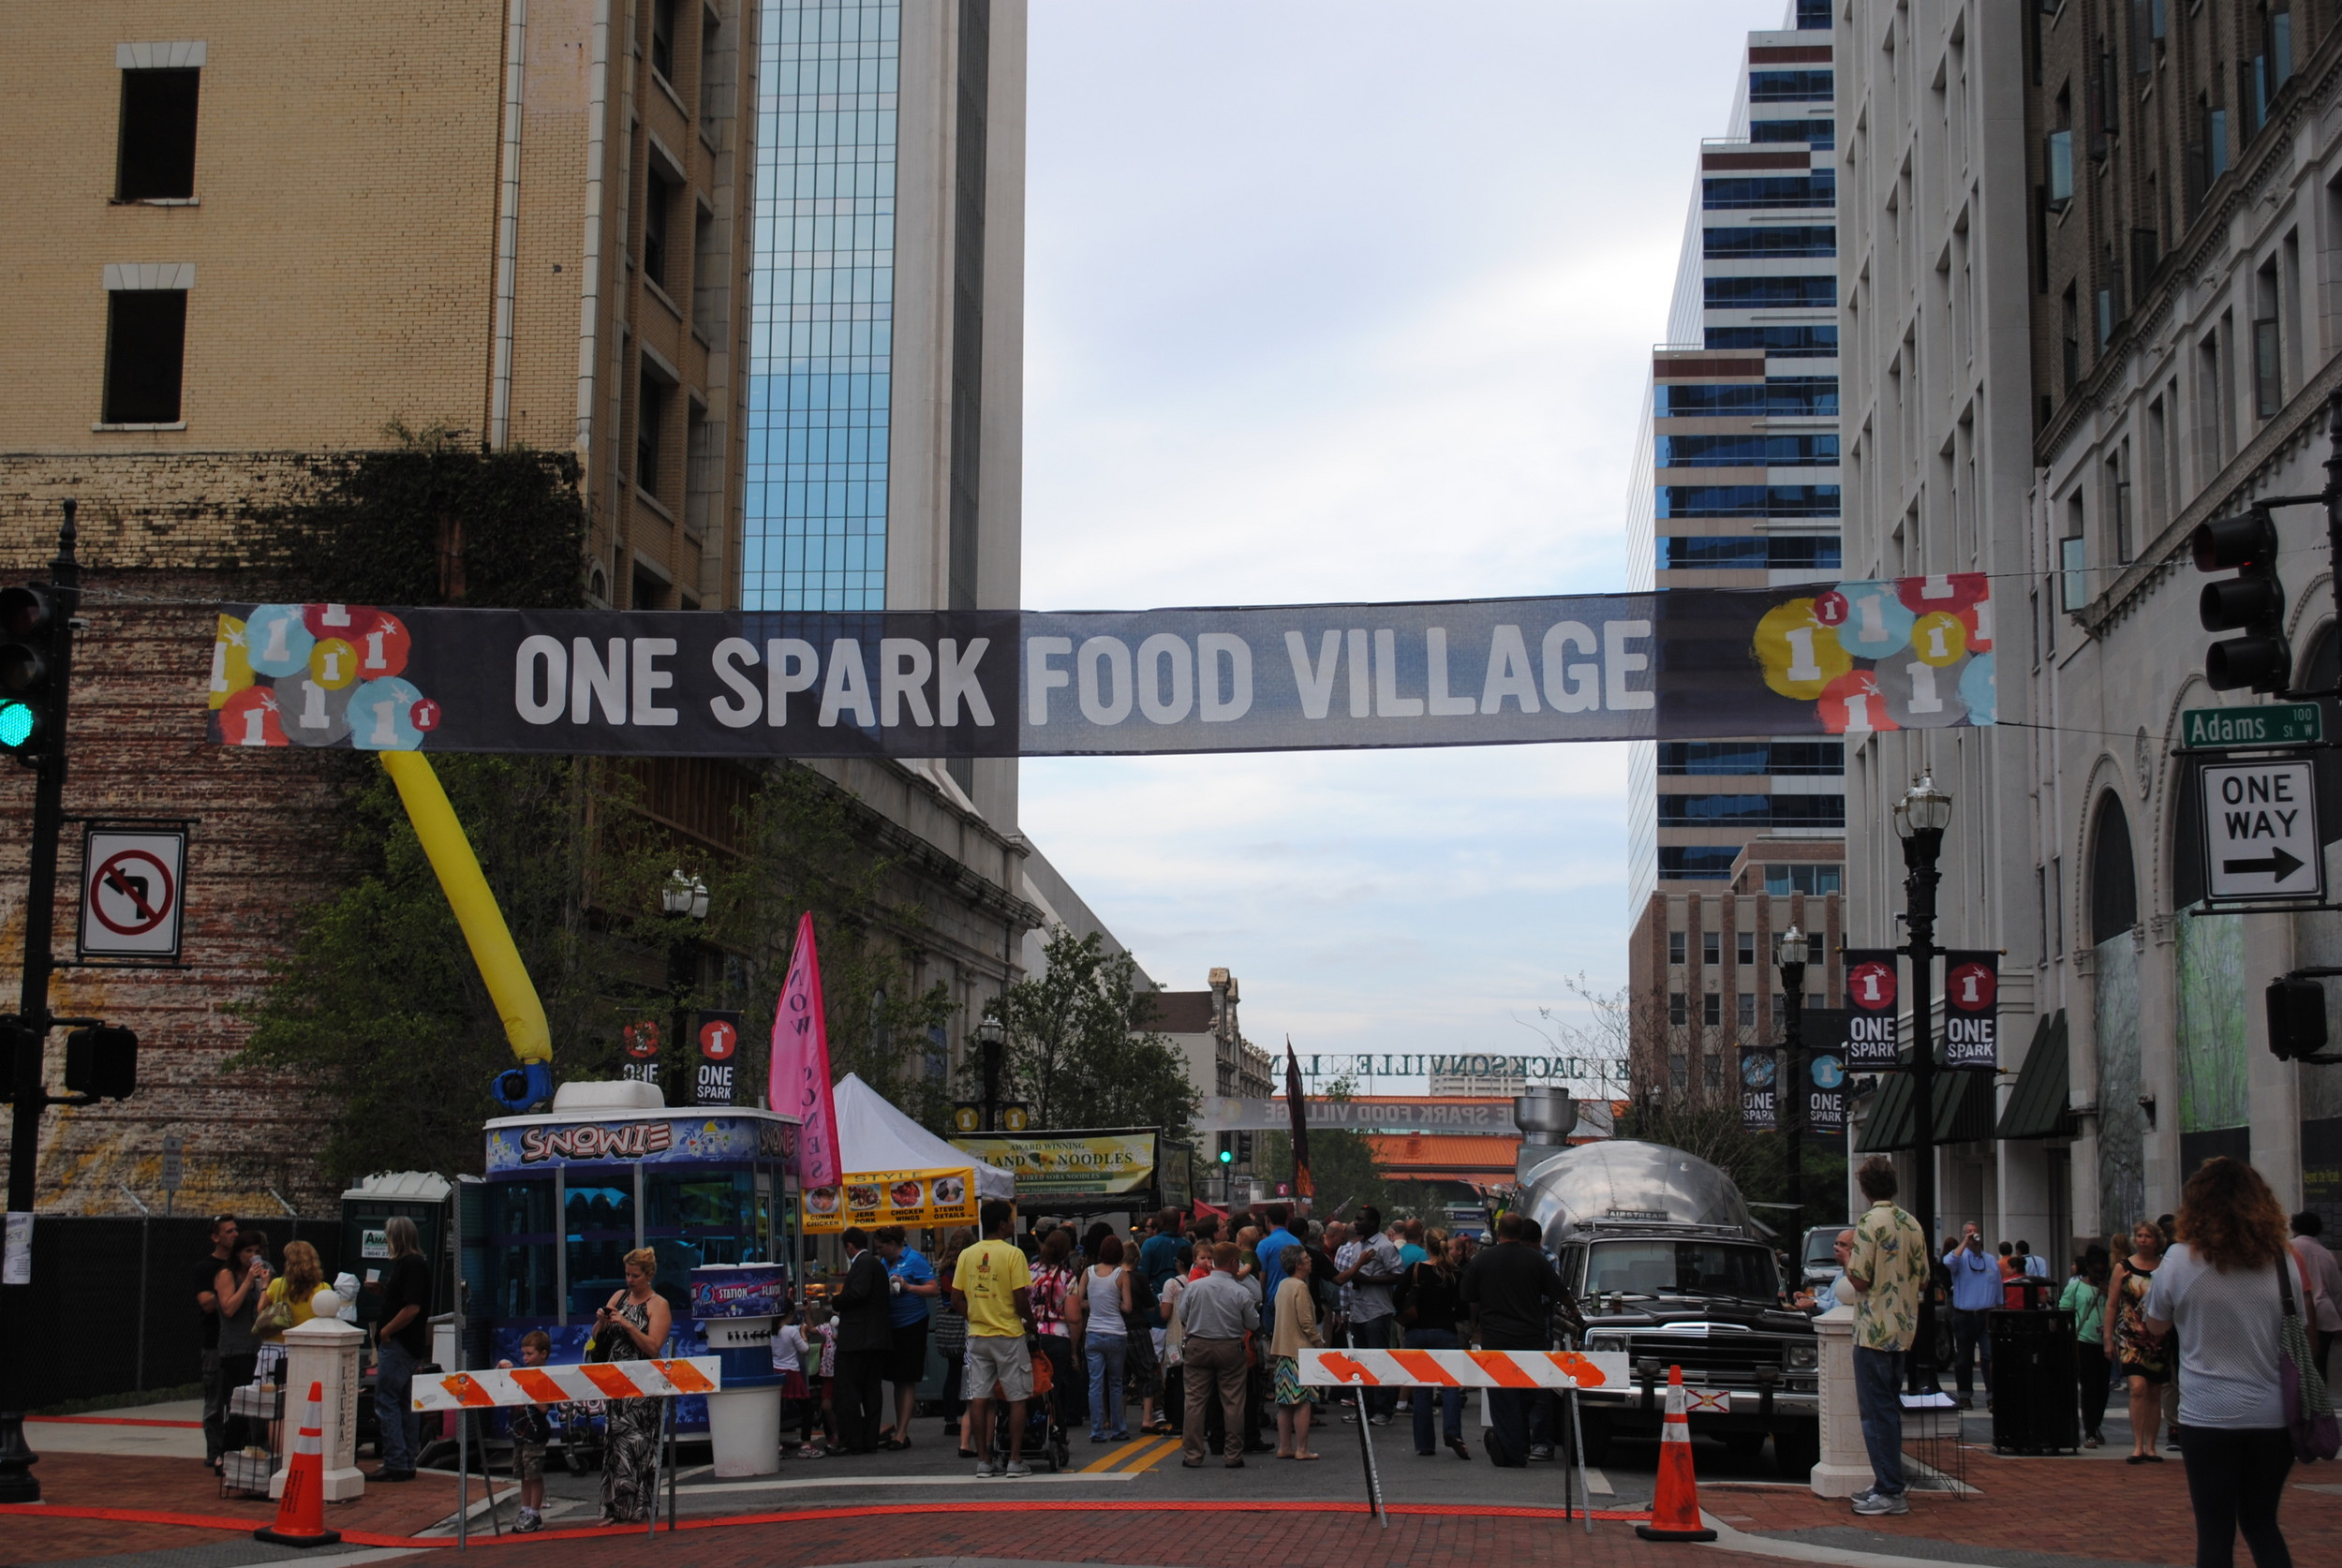 One Spark Food Village